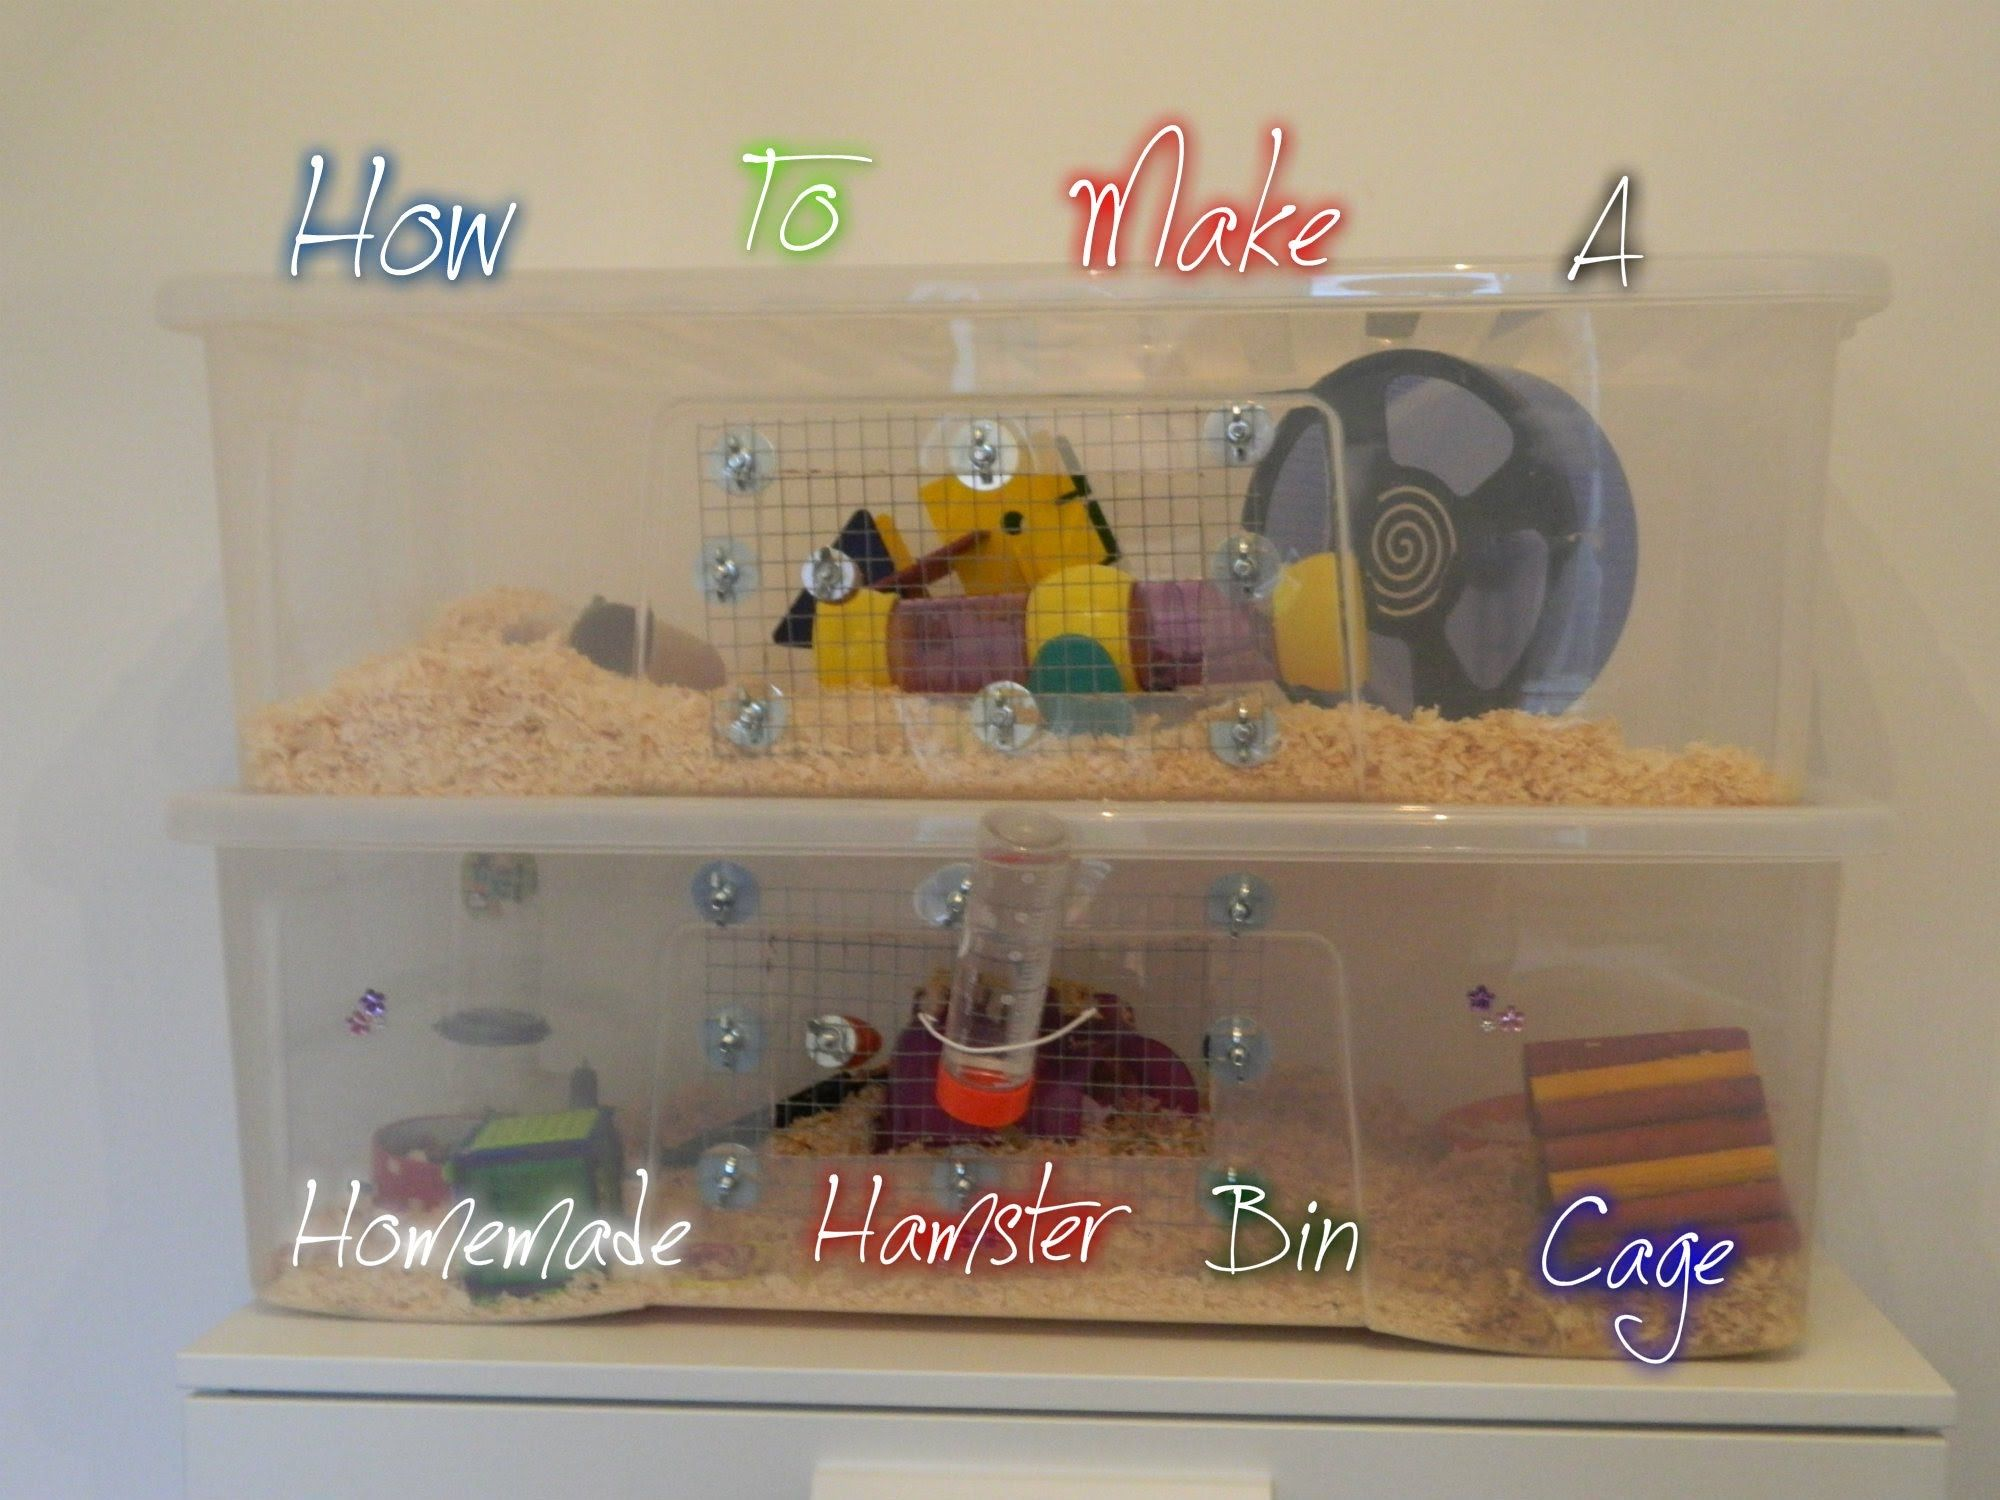 How To Make A Homemade Hamster Bin Cage Hamster Bin Cage Hamster Cages Hamster Diy Cage